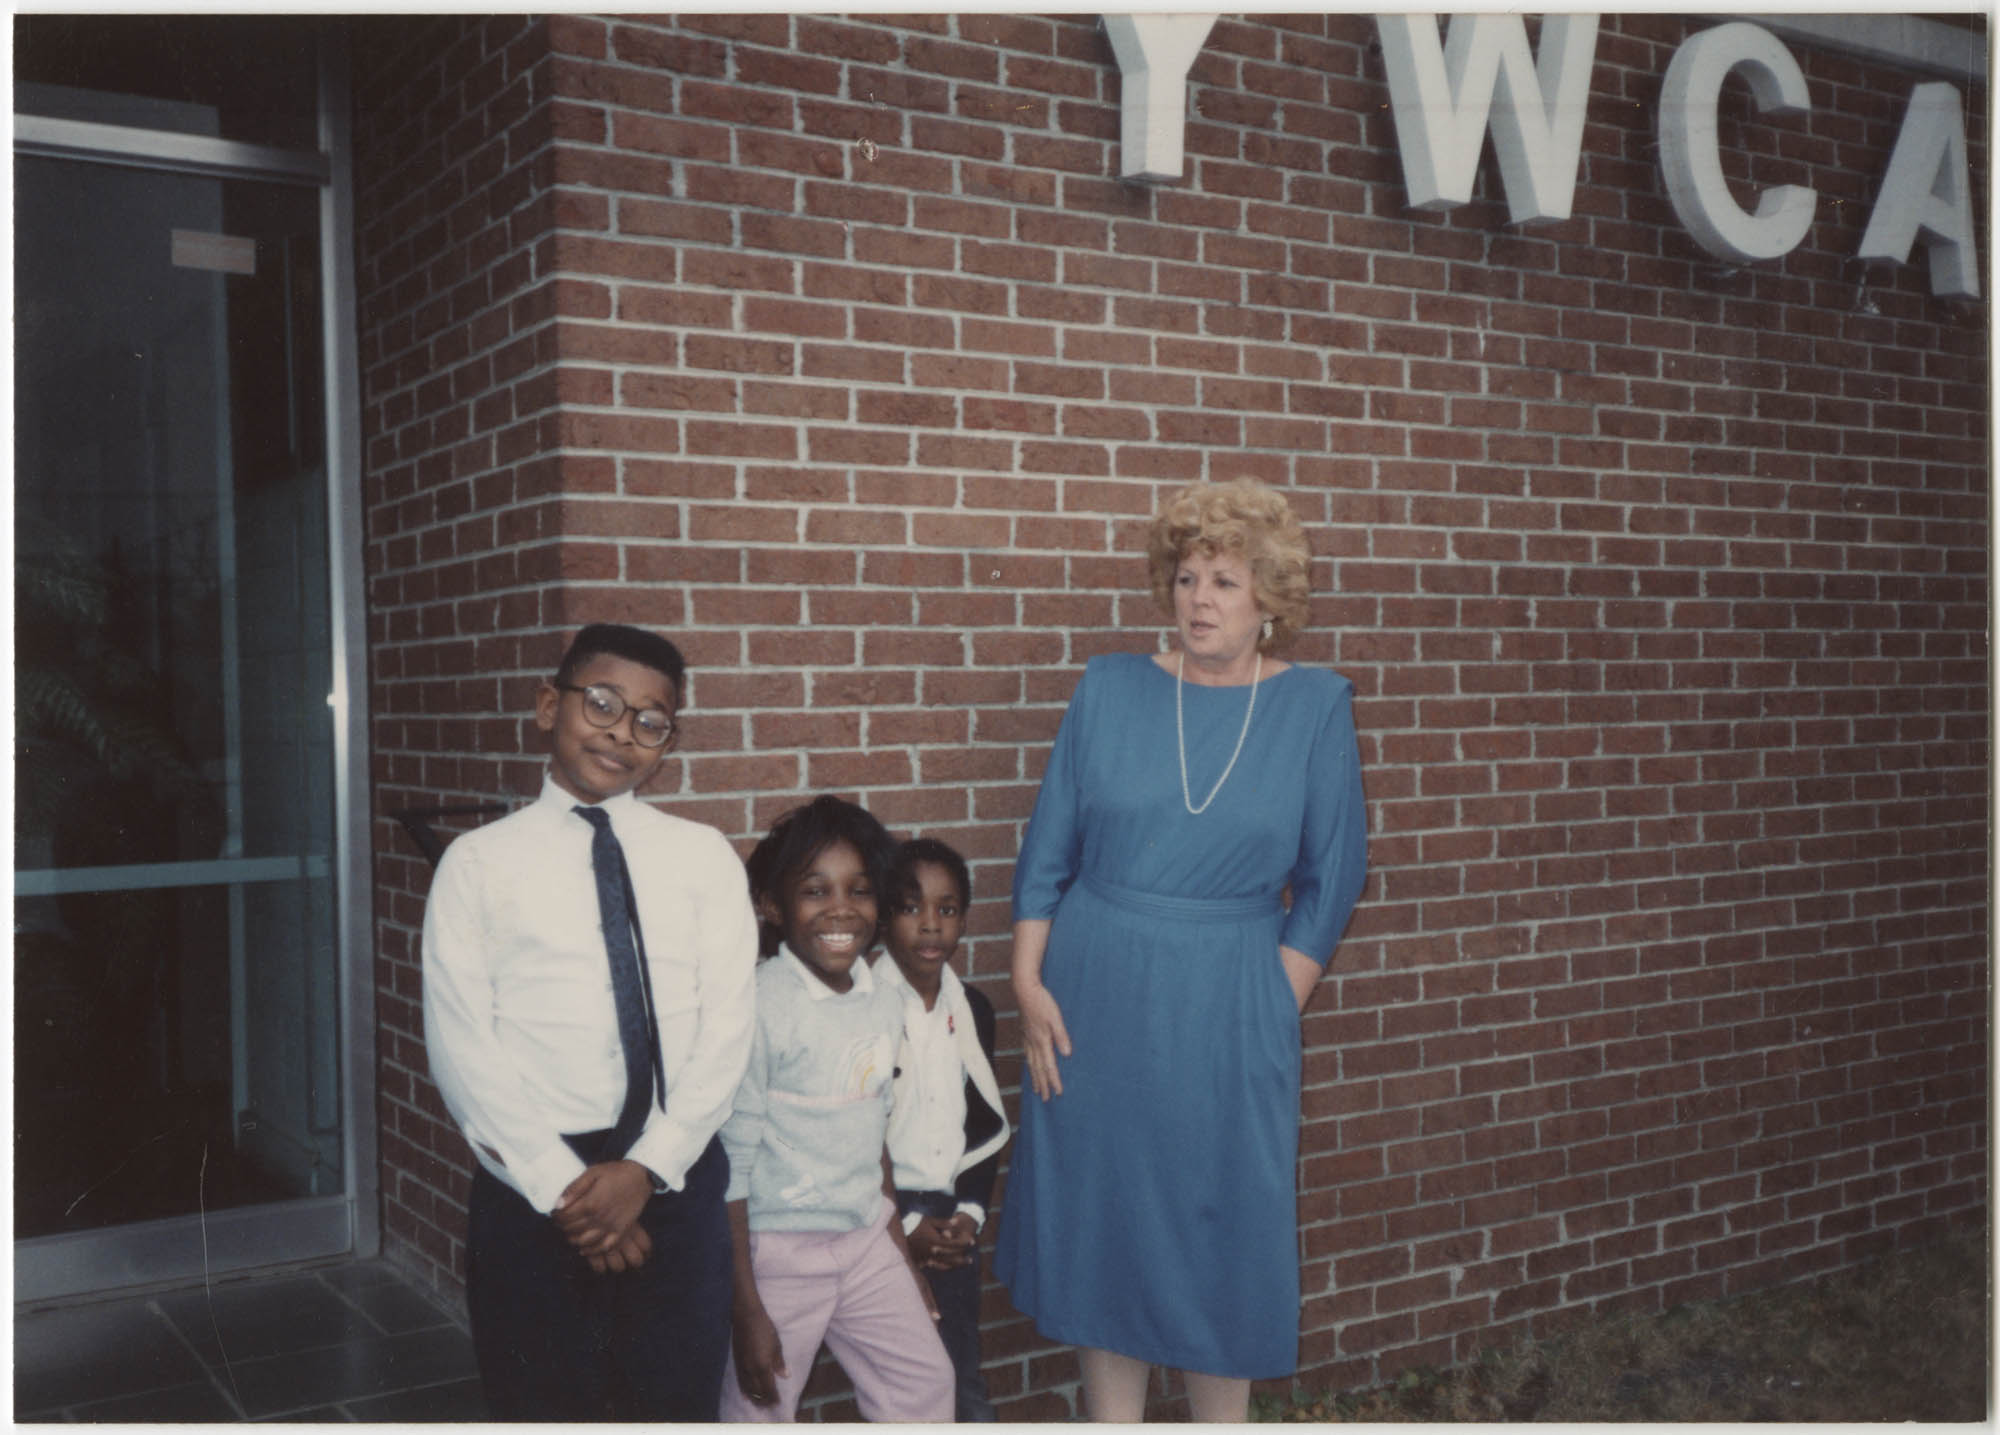 Photograph of Three Children and a Woman